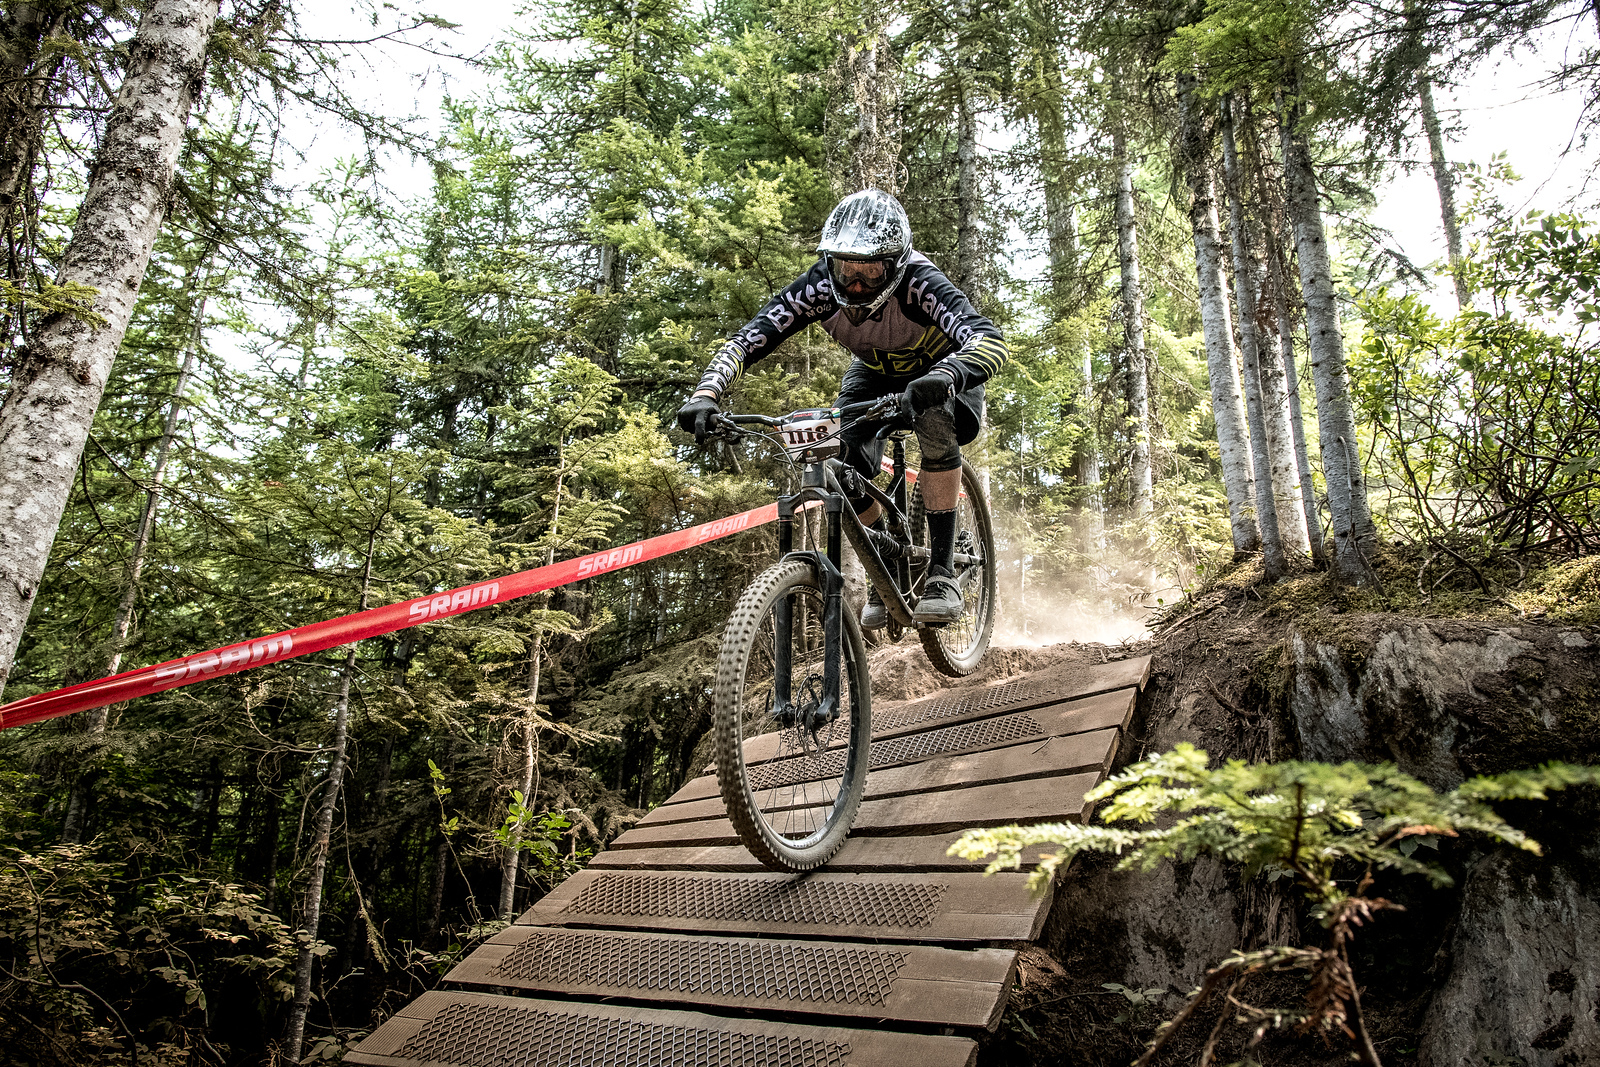 Steven MacVicar. Bell Helmets Canadian Open Challenger Enduro presented by CamelBak. Crankworx Whistler 2017. Photo by: Scott Robarts